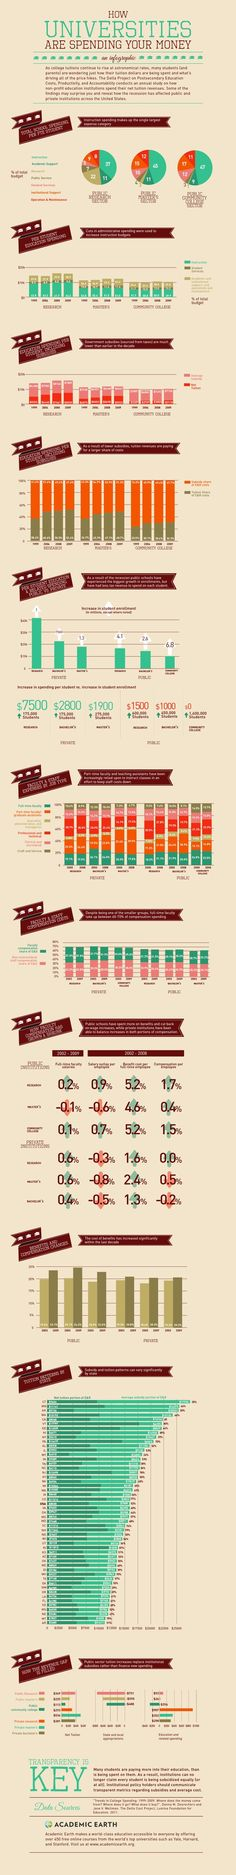 Cool infographic on how universities spend tuition $$$.  Any of this surprising to you?